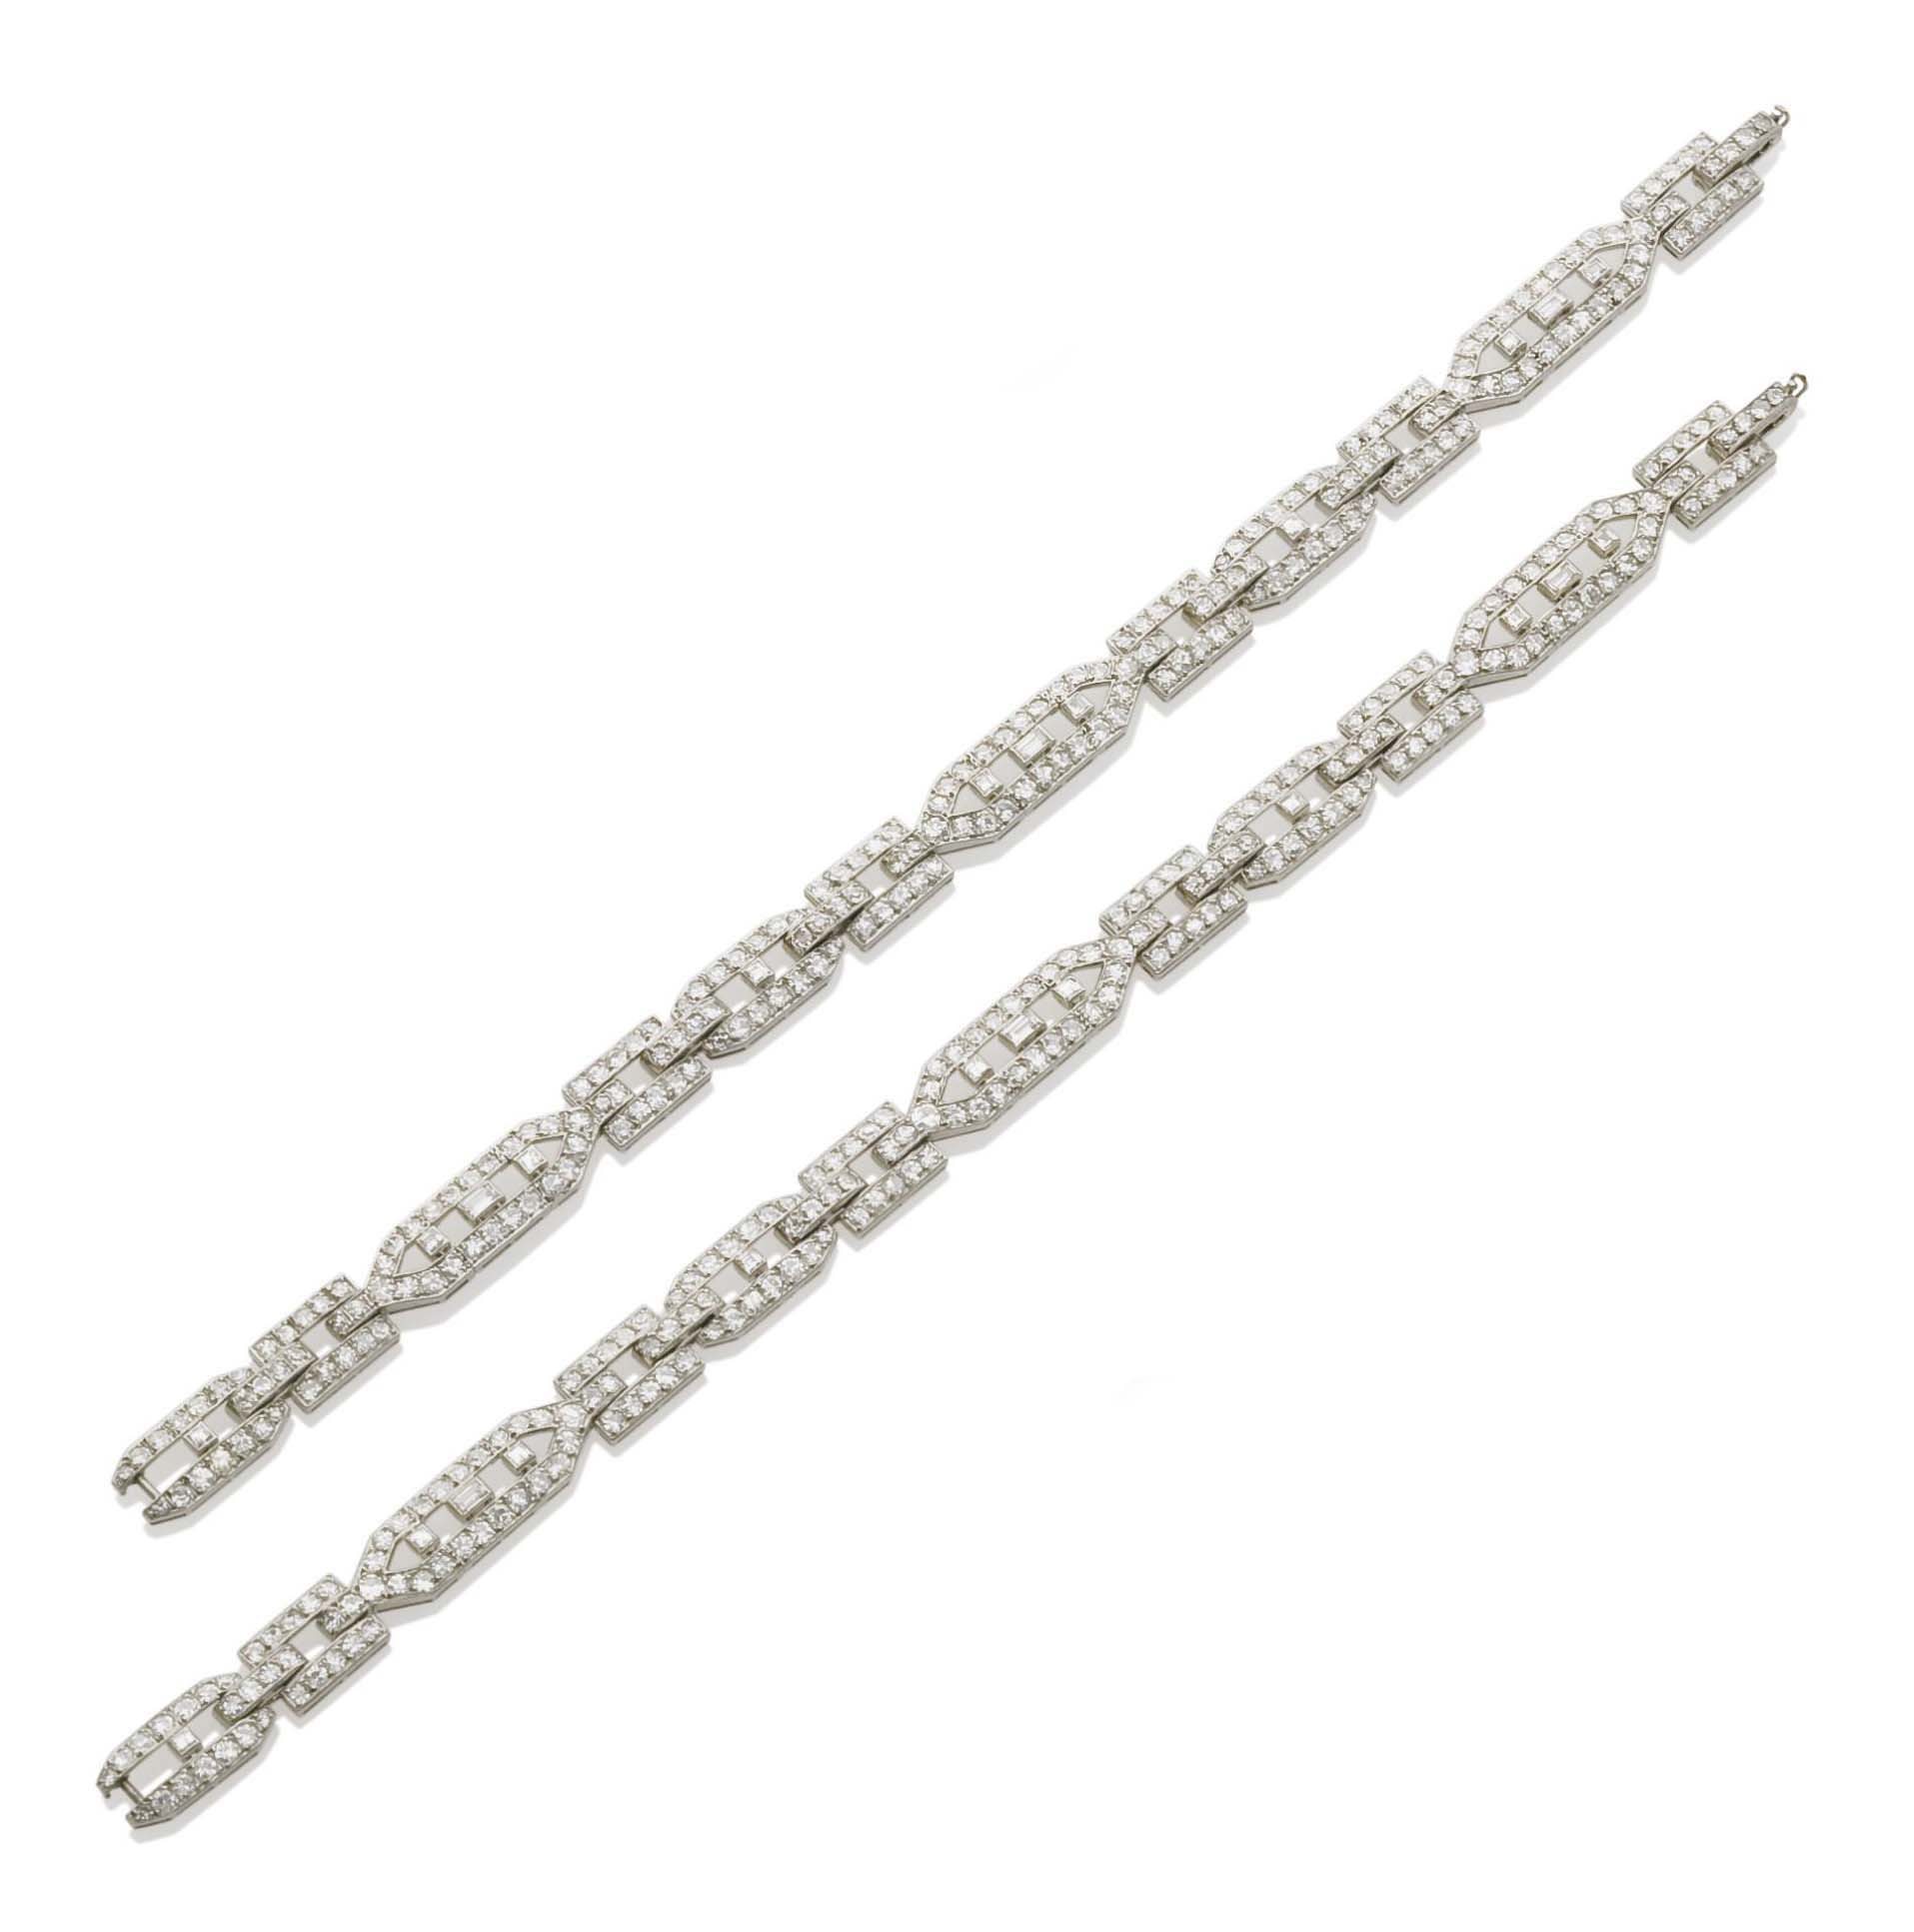 PAIRE DE BRACELETS ART DECO DIAMANTS, PAR GHISO